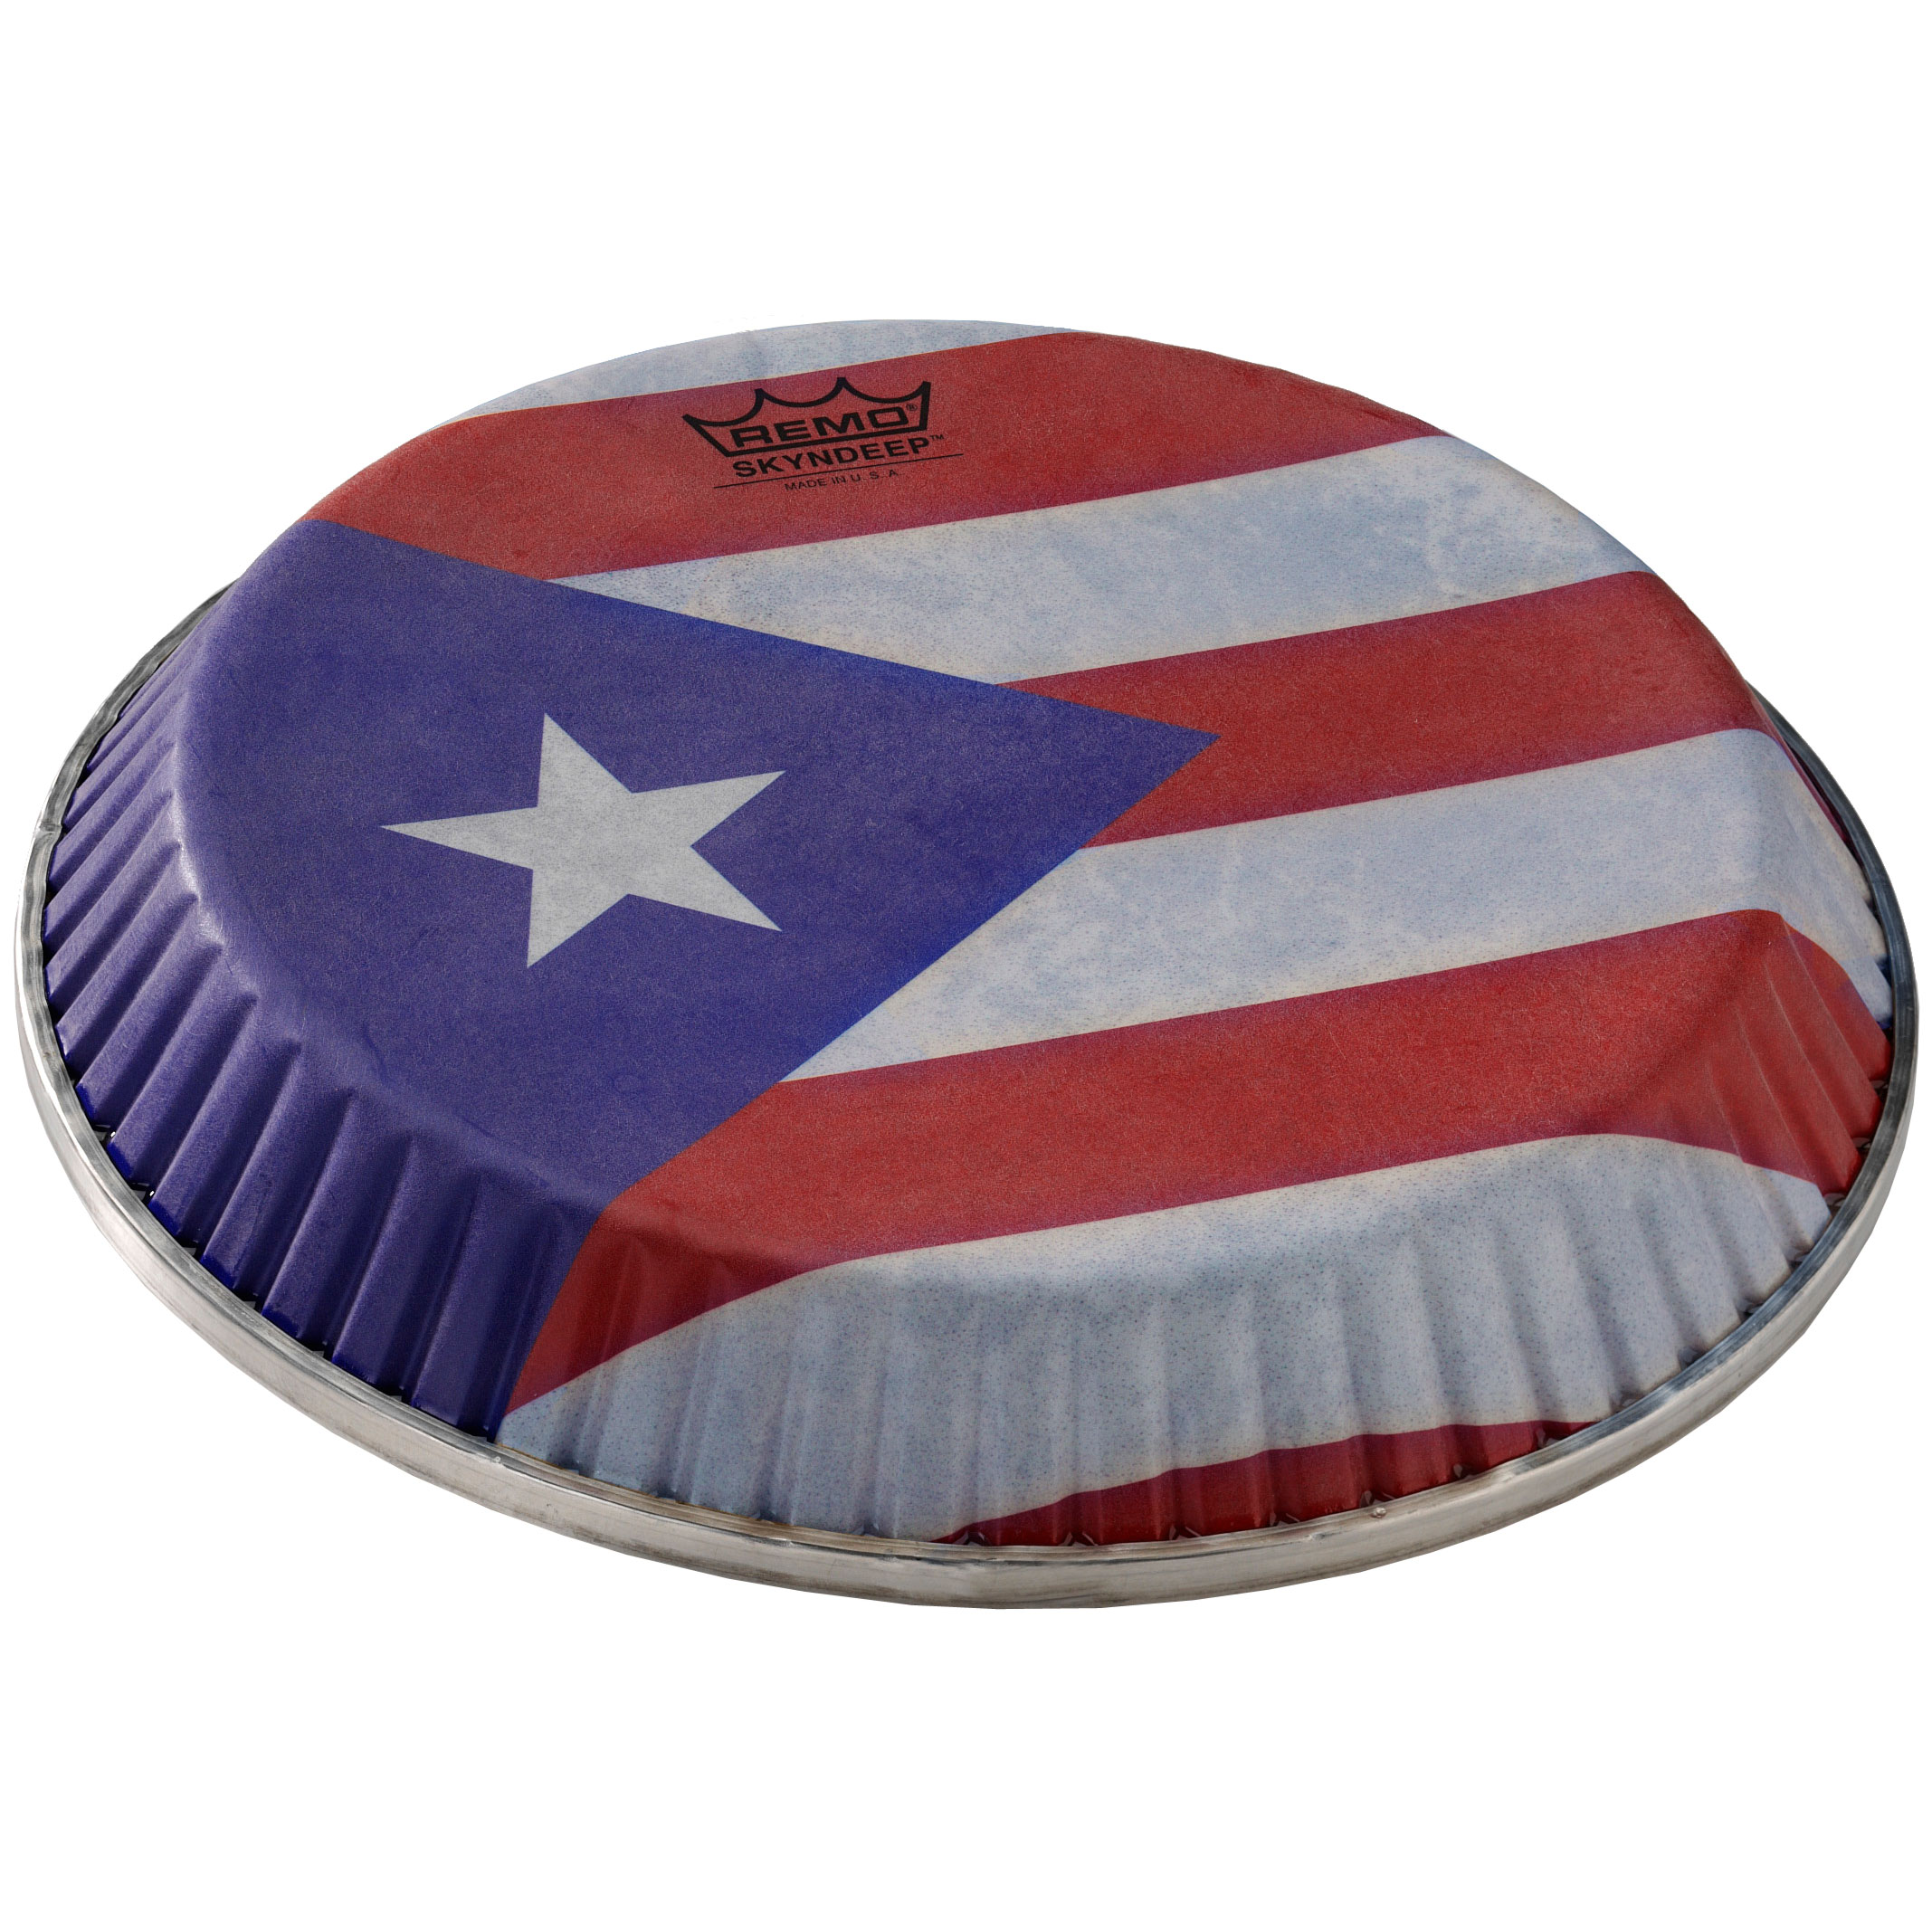 "Remo 9.75"" Symmetry Skyndeep Conga Drum Head (D4 Collar) with Puerto Rican Flag Graphic"